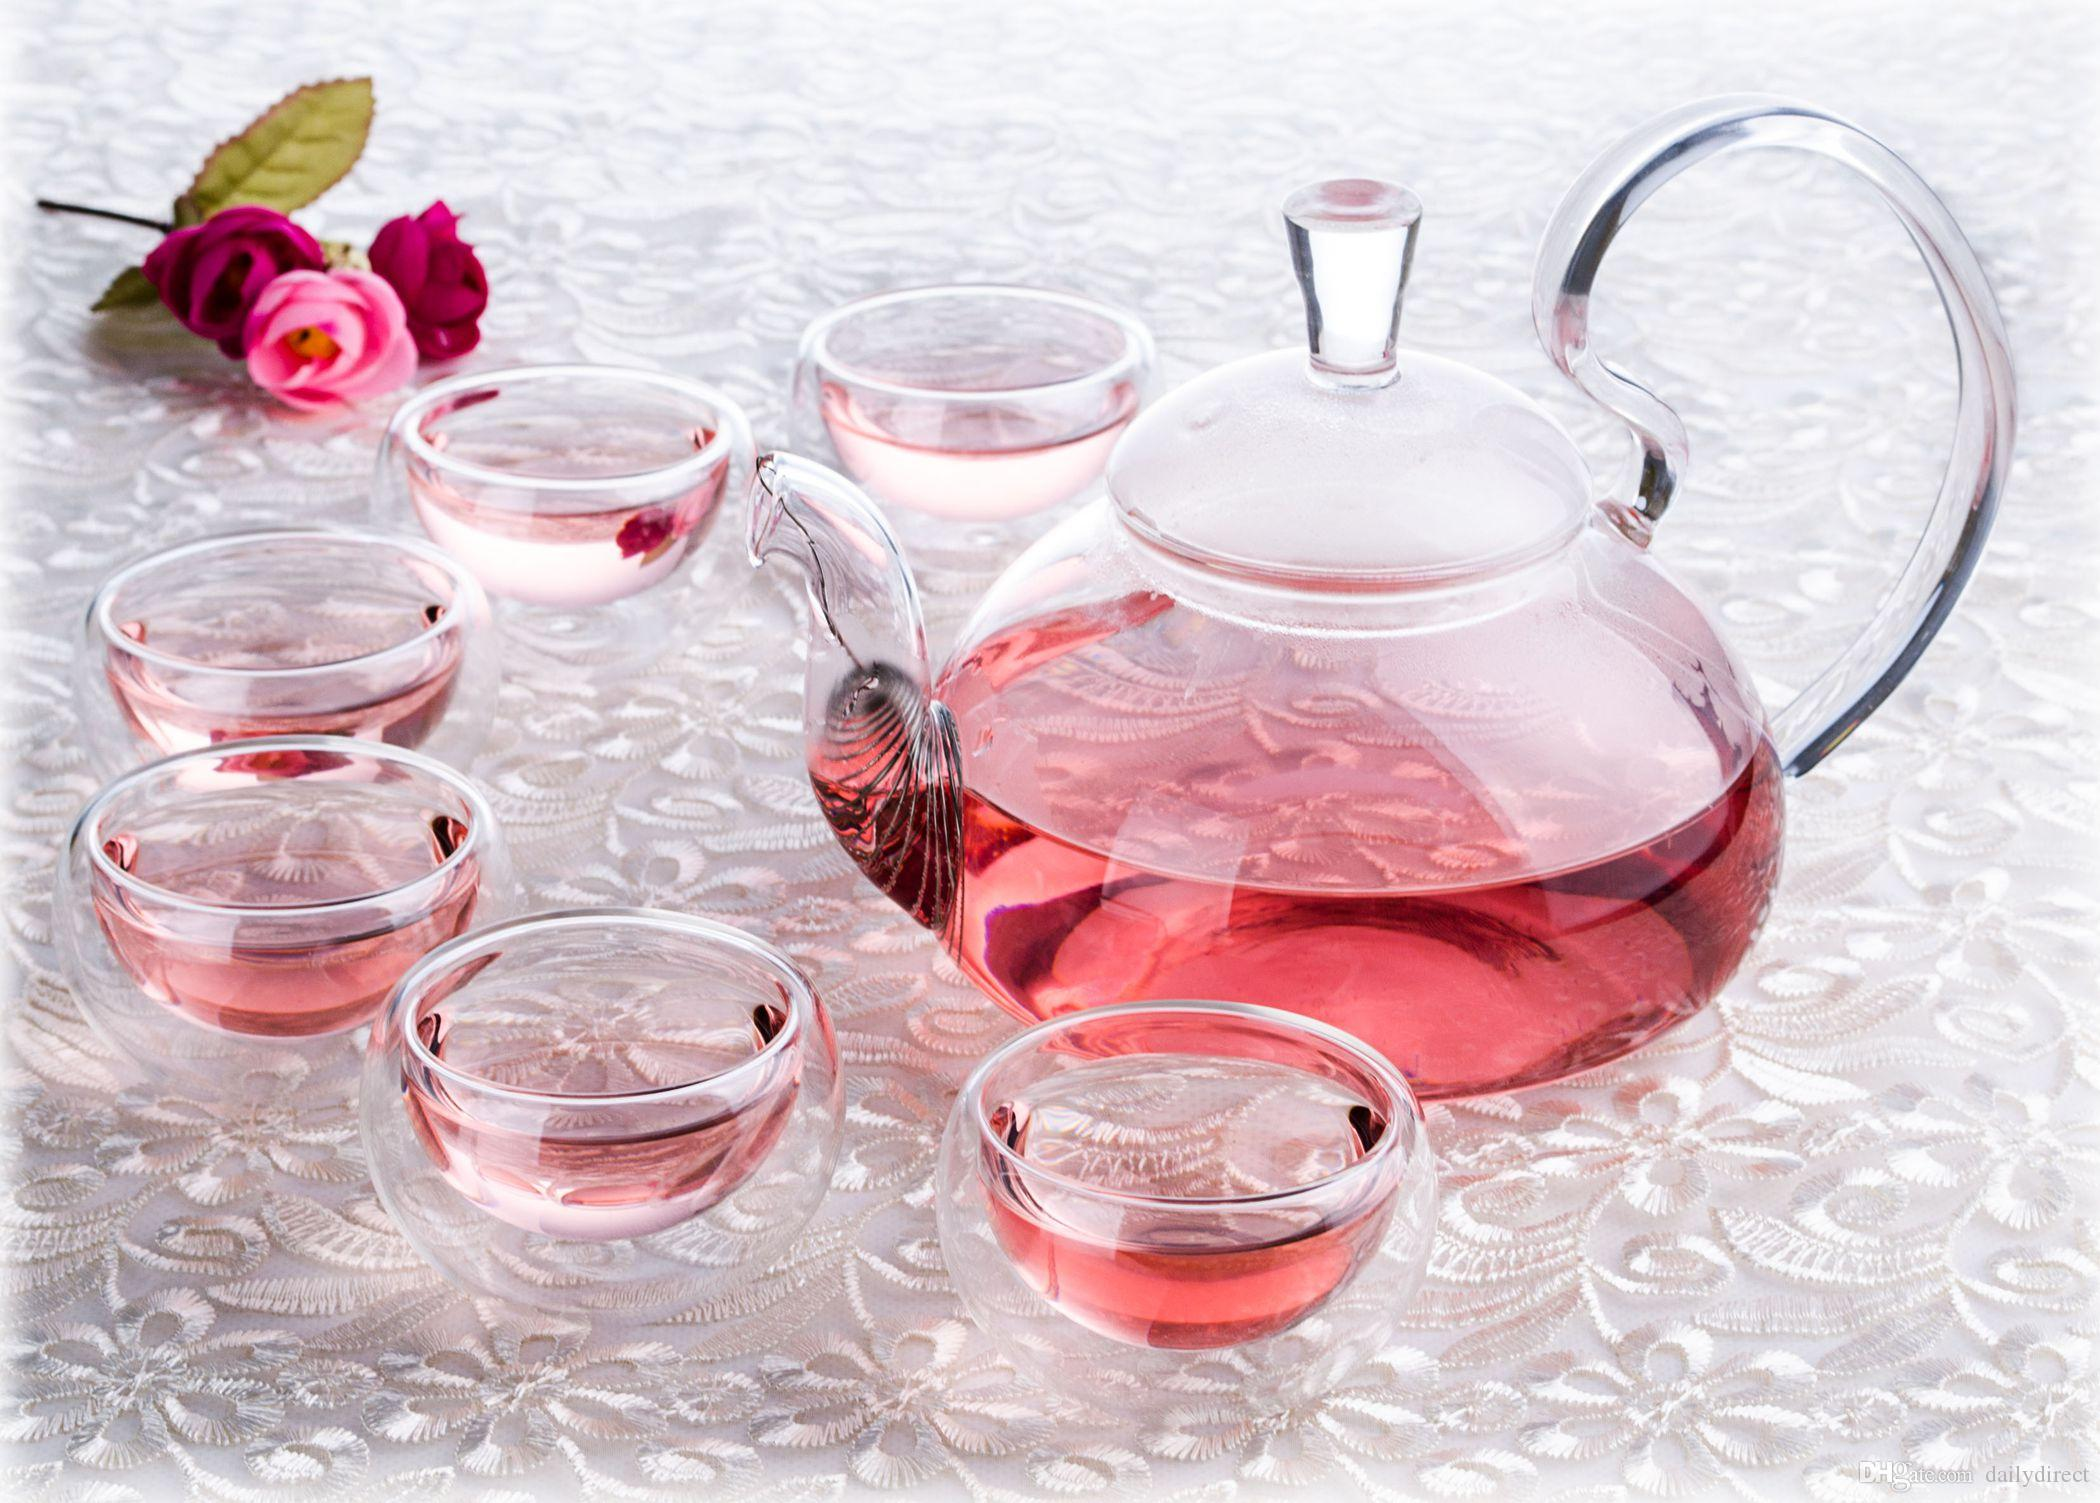 1x Teapot Set - 780ml High Handle Heat-Resisting Glass Teapot + 6x Double Walled Cups + Round Teapot Warmer